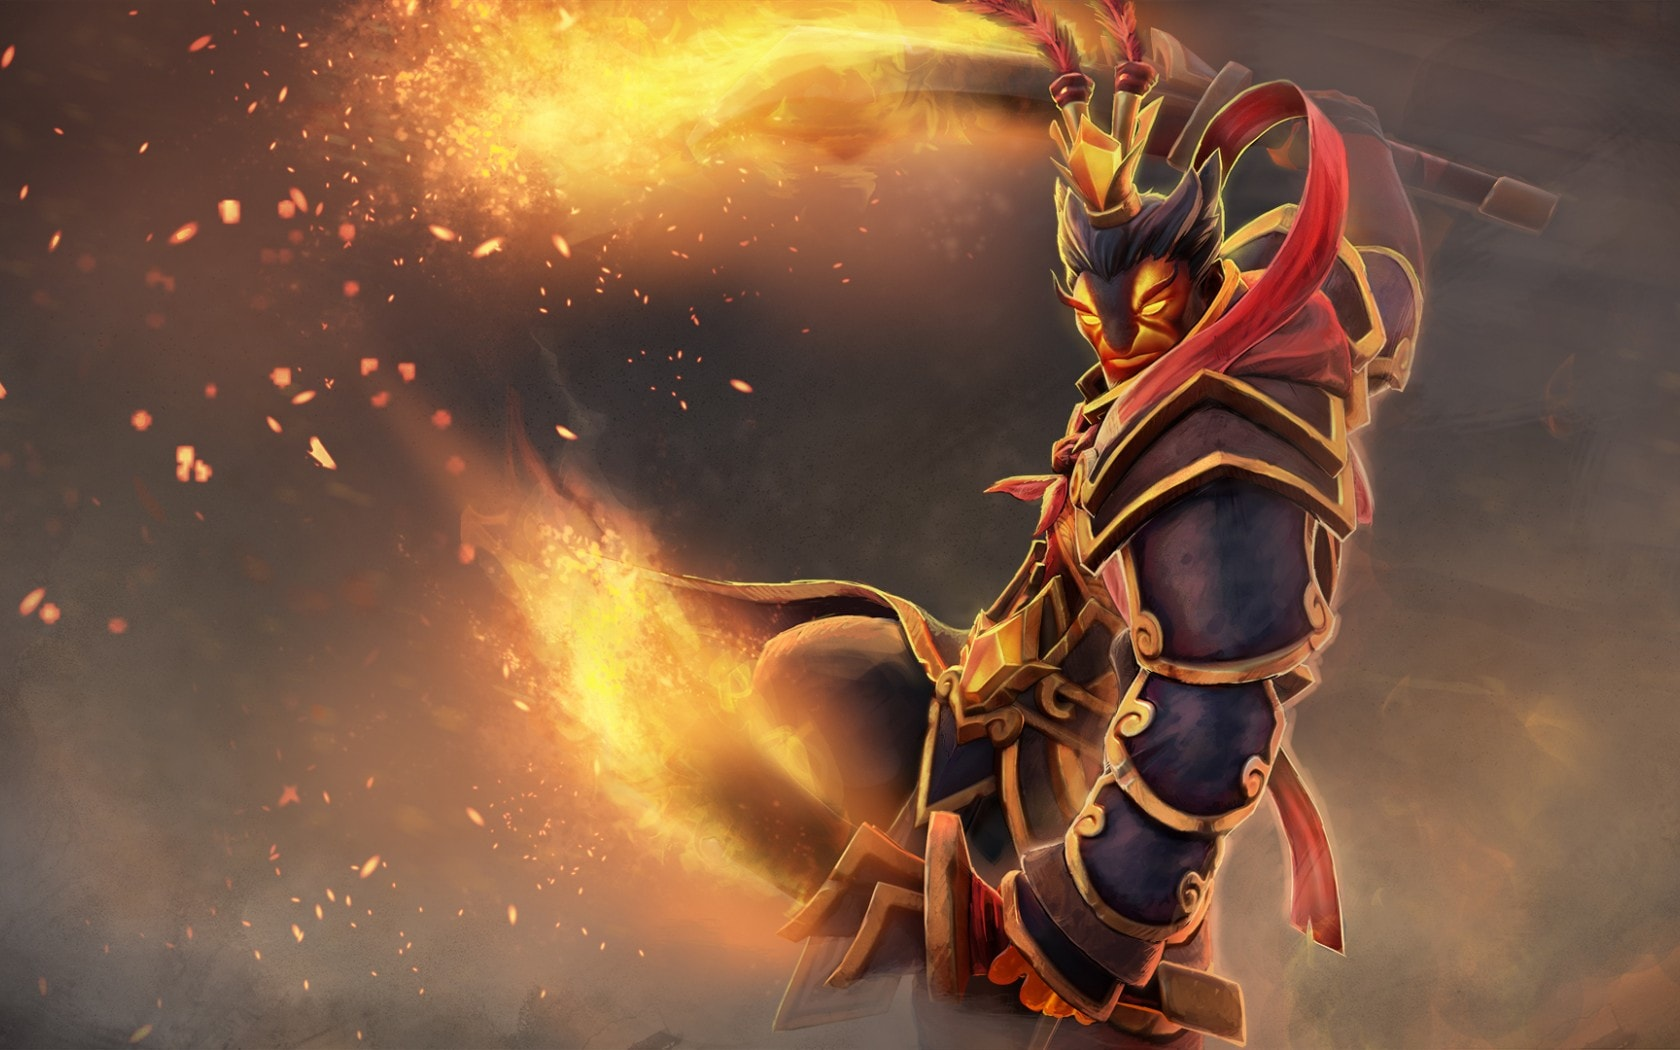 Dota2 Ember Spirit Hd Wallpapers 7wallpapers Net